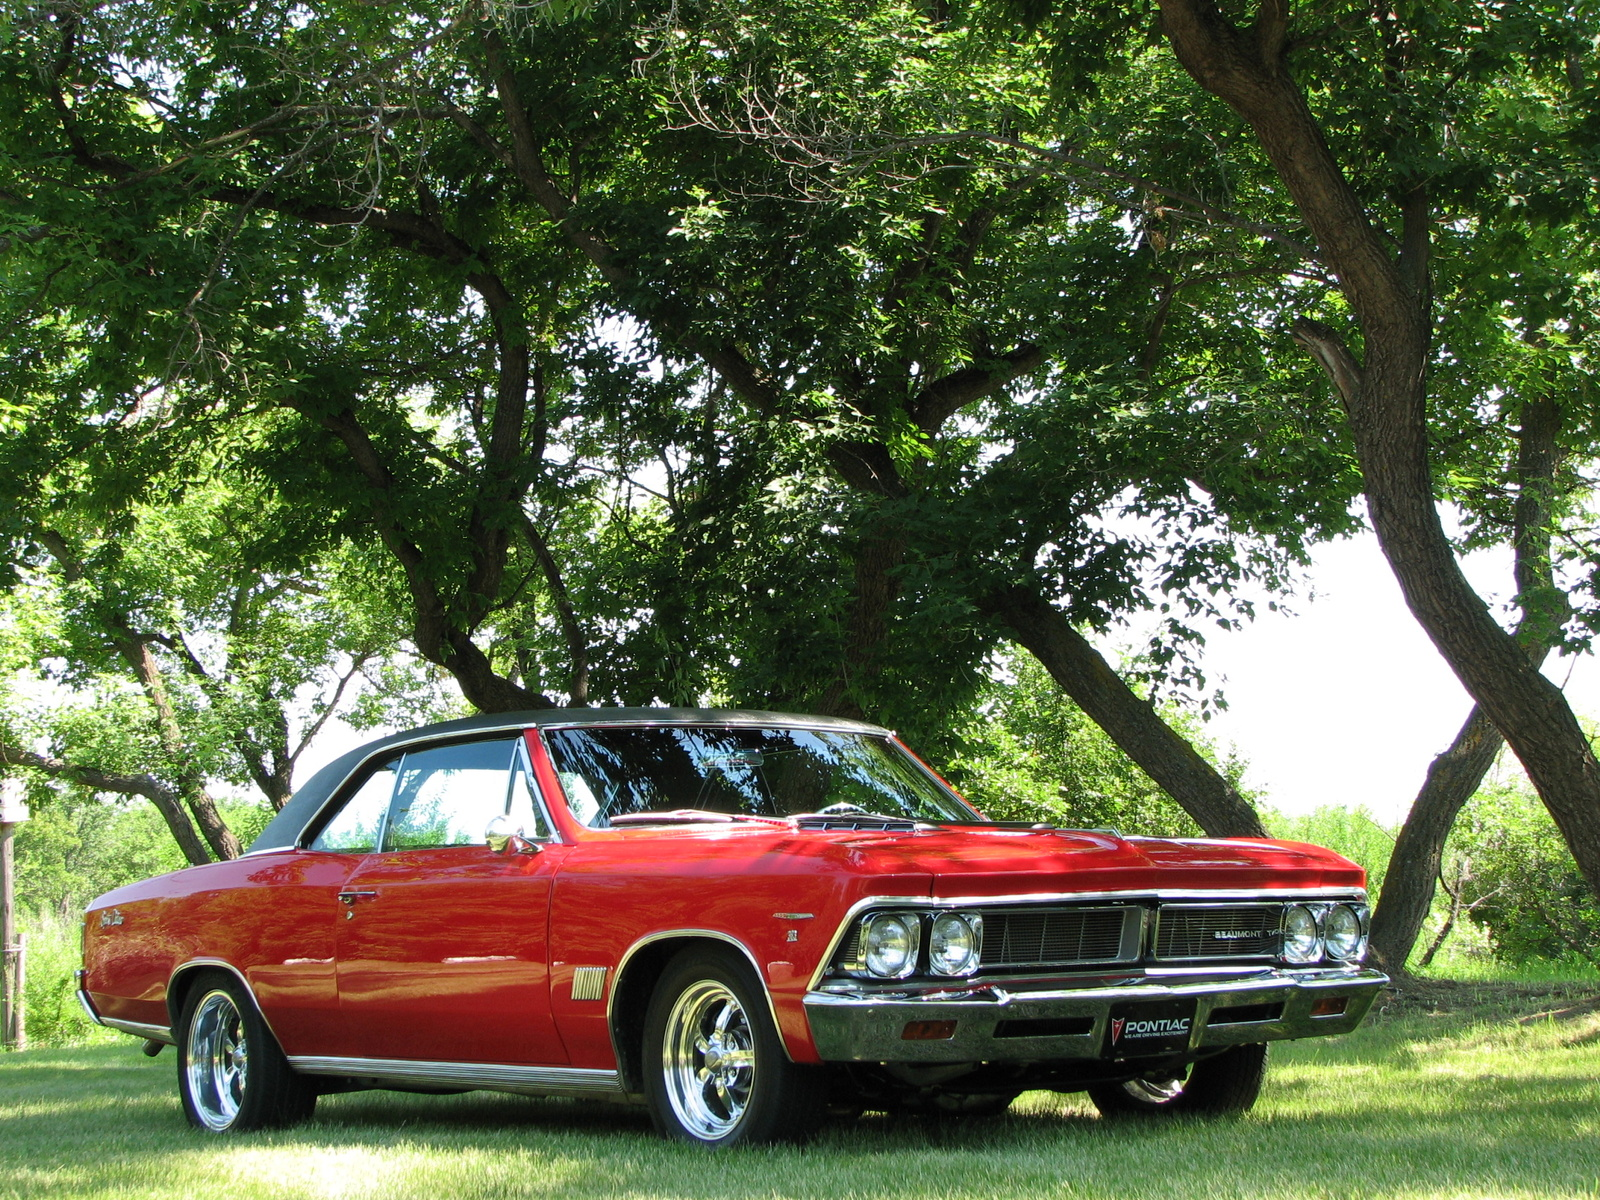 1966 pontiac beaumont picture of chevrolet chevelle. Cars Review. Best American Auto & Cars Review